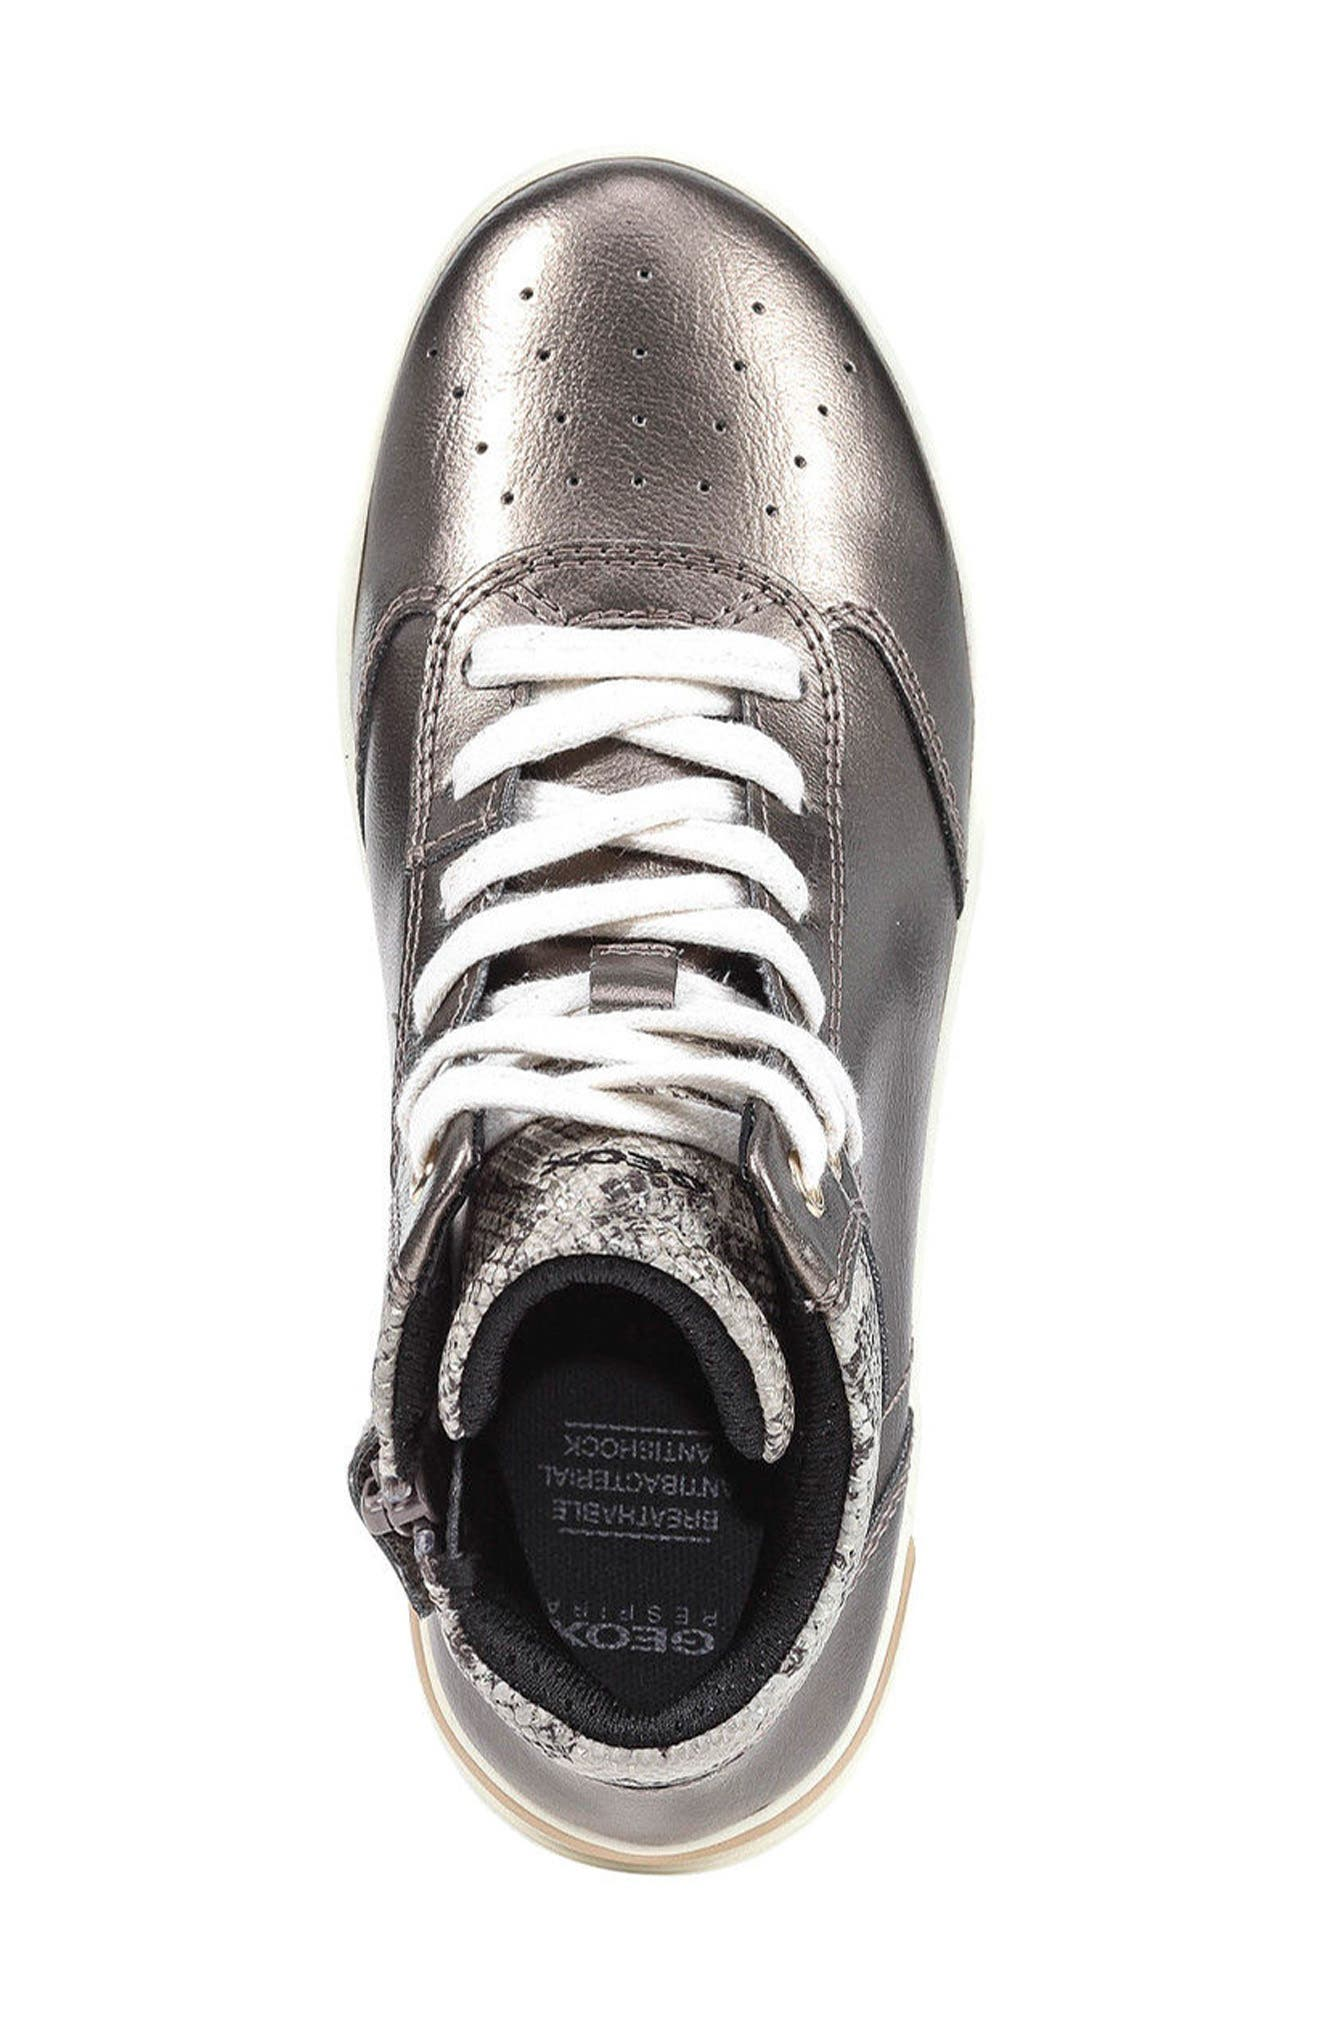 Cave Up Girl High Top Sneaker,                             Alternate thumbnail 10, color,